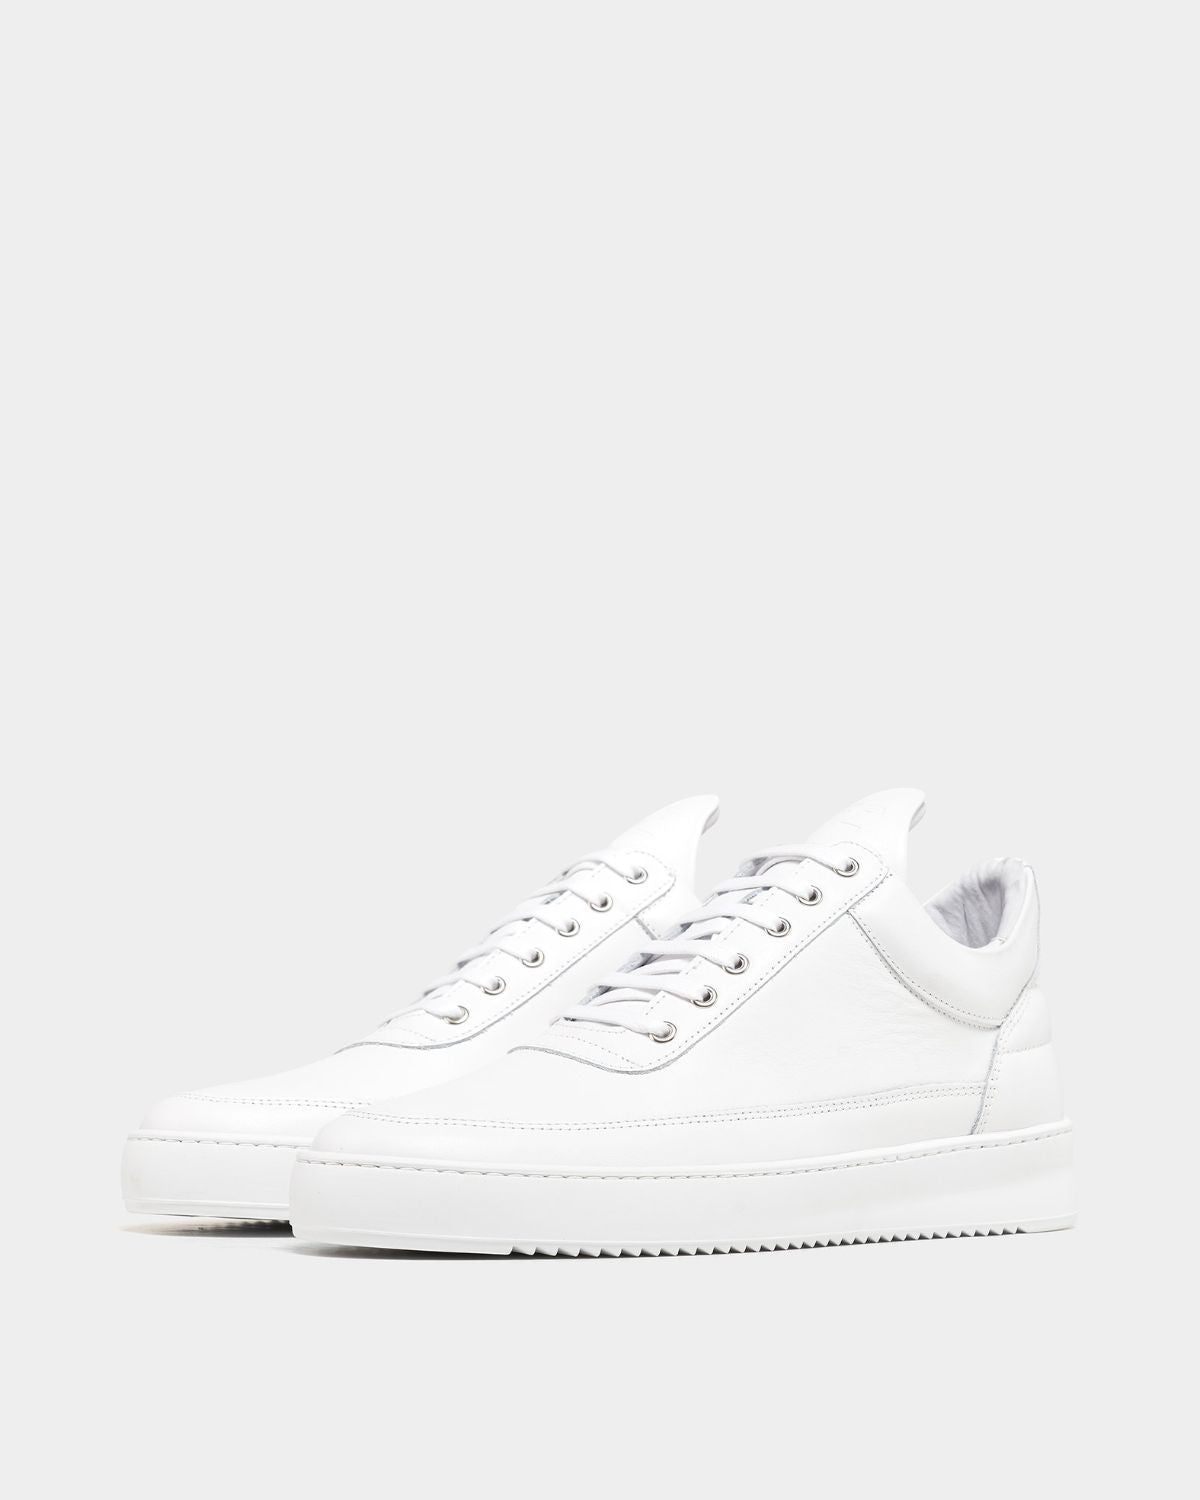 Low Top Ripple Nappa All White Filling Pieces